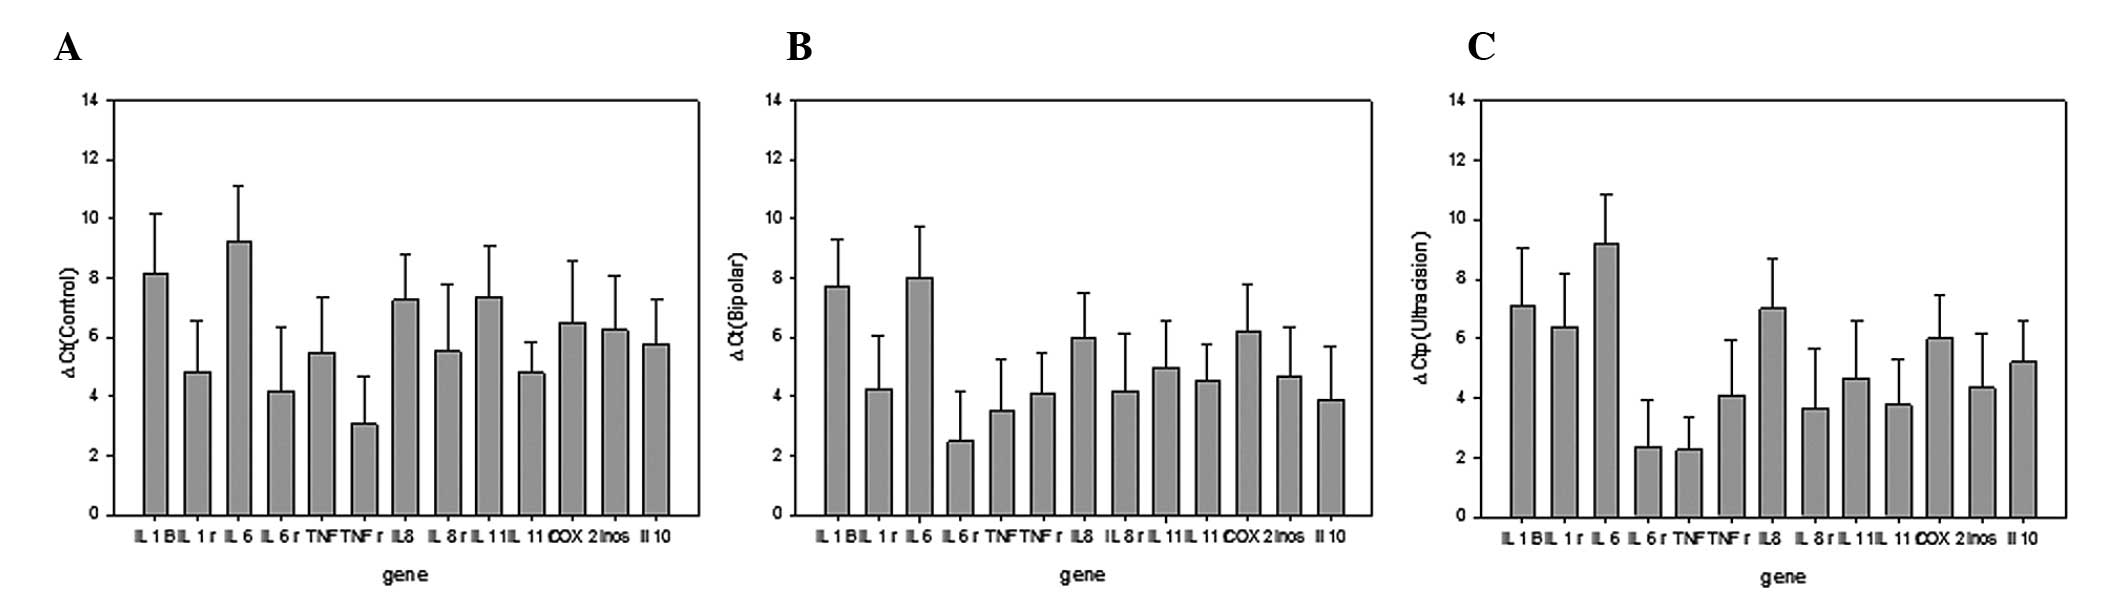 Inflammatory cytokine expression following the use of bipolar